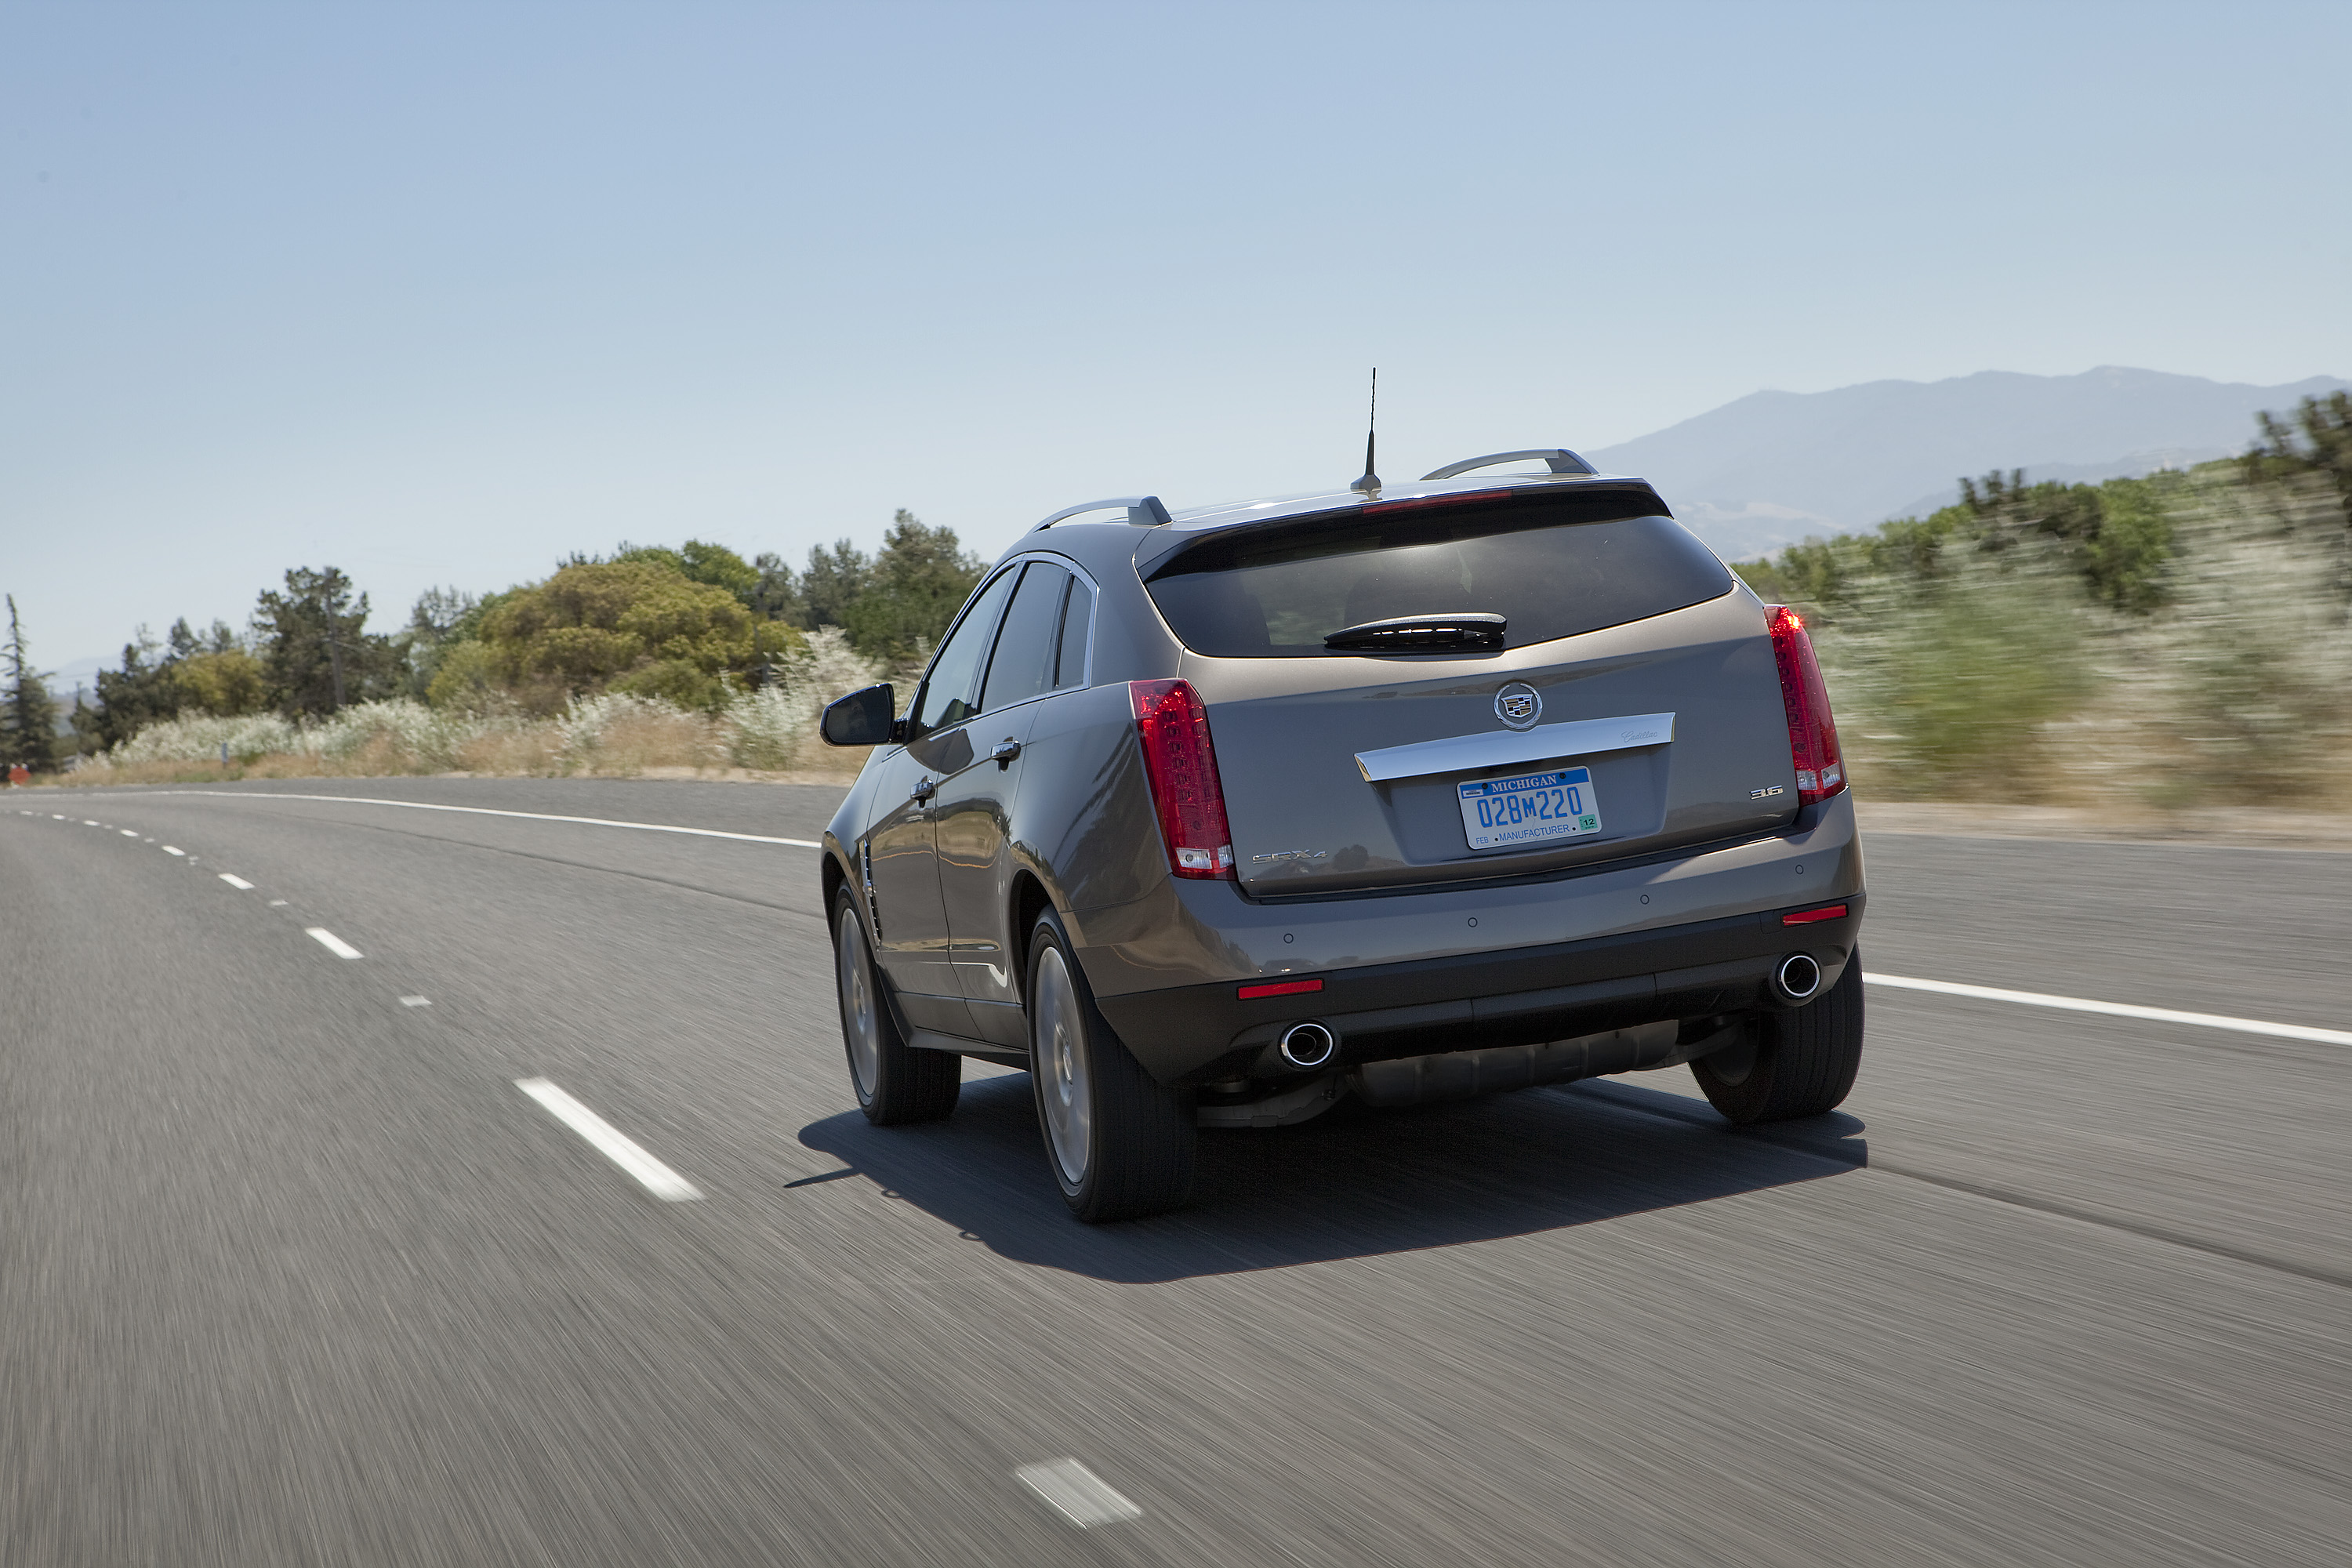 luxury srx cadillac diminished appraisal value car